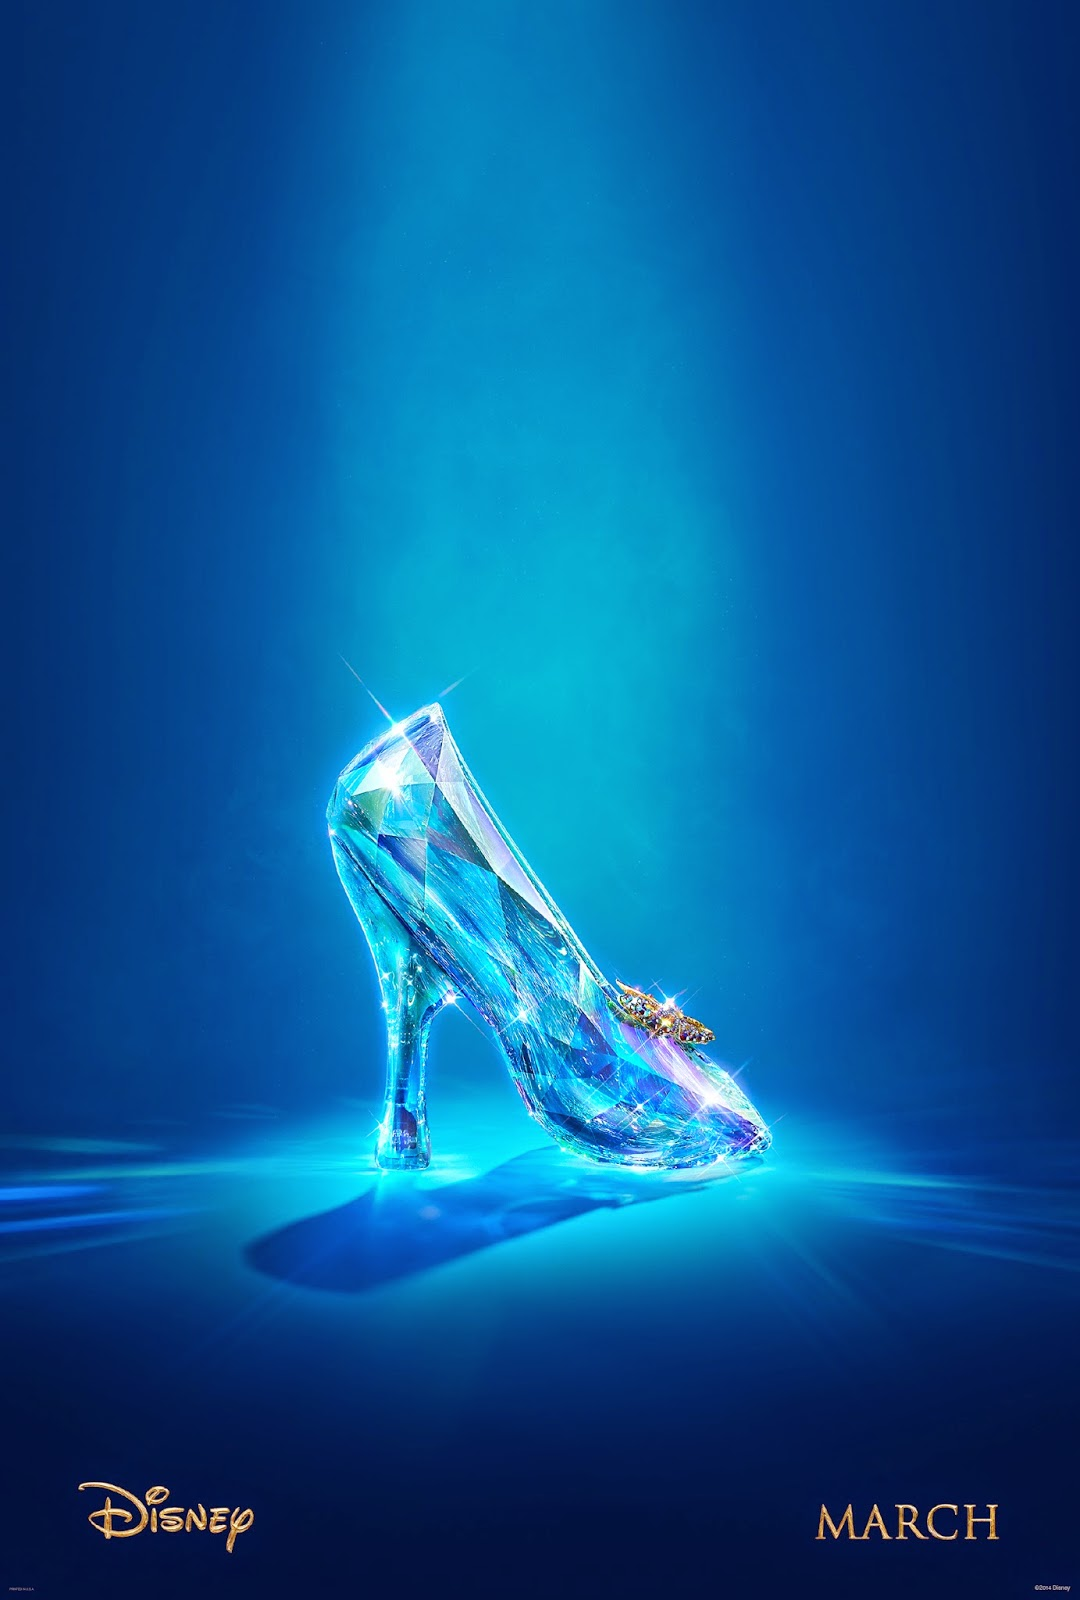 Cinderella Teaser Poster:  just a simple image of the legendary glass slipper